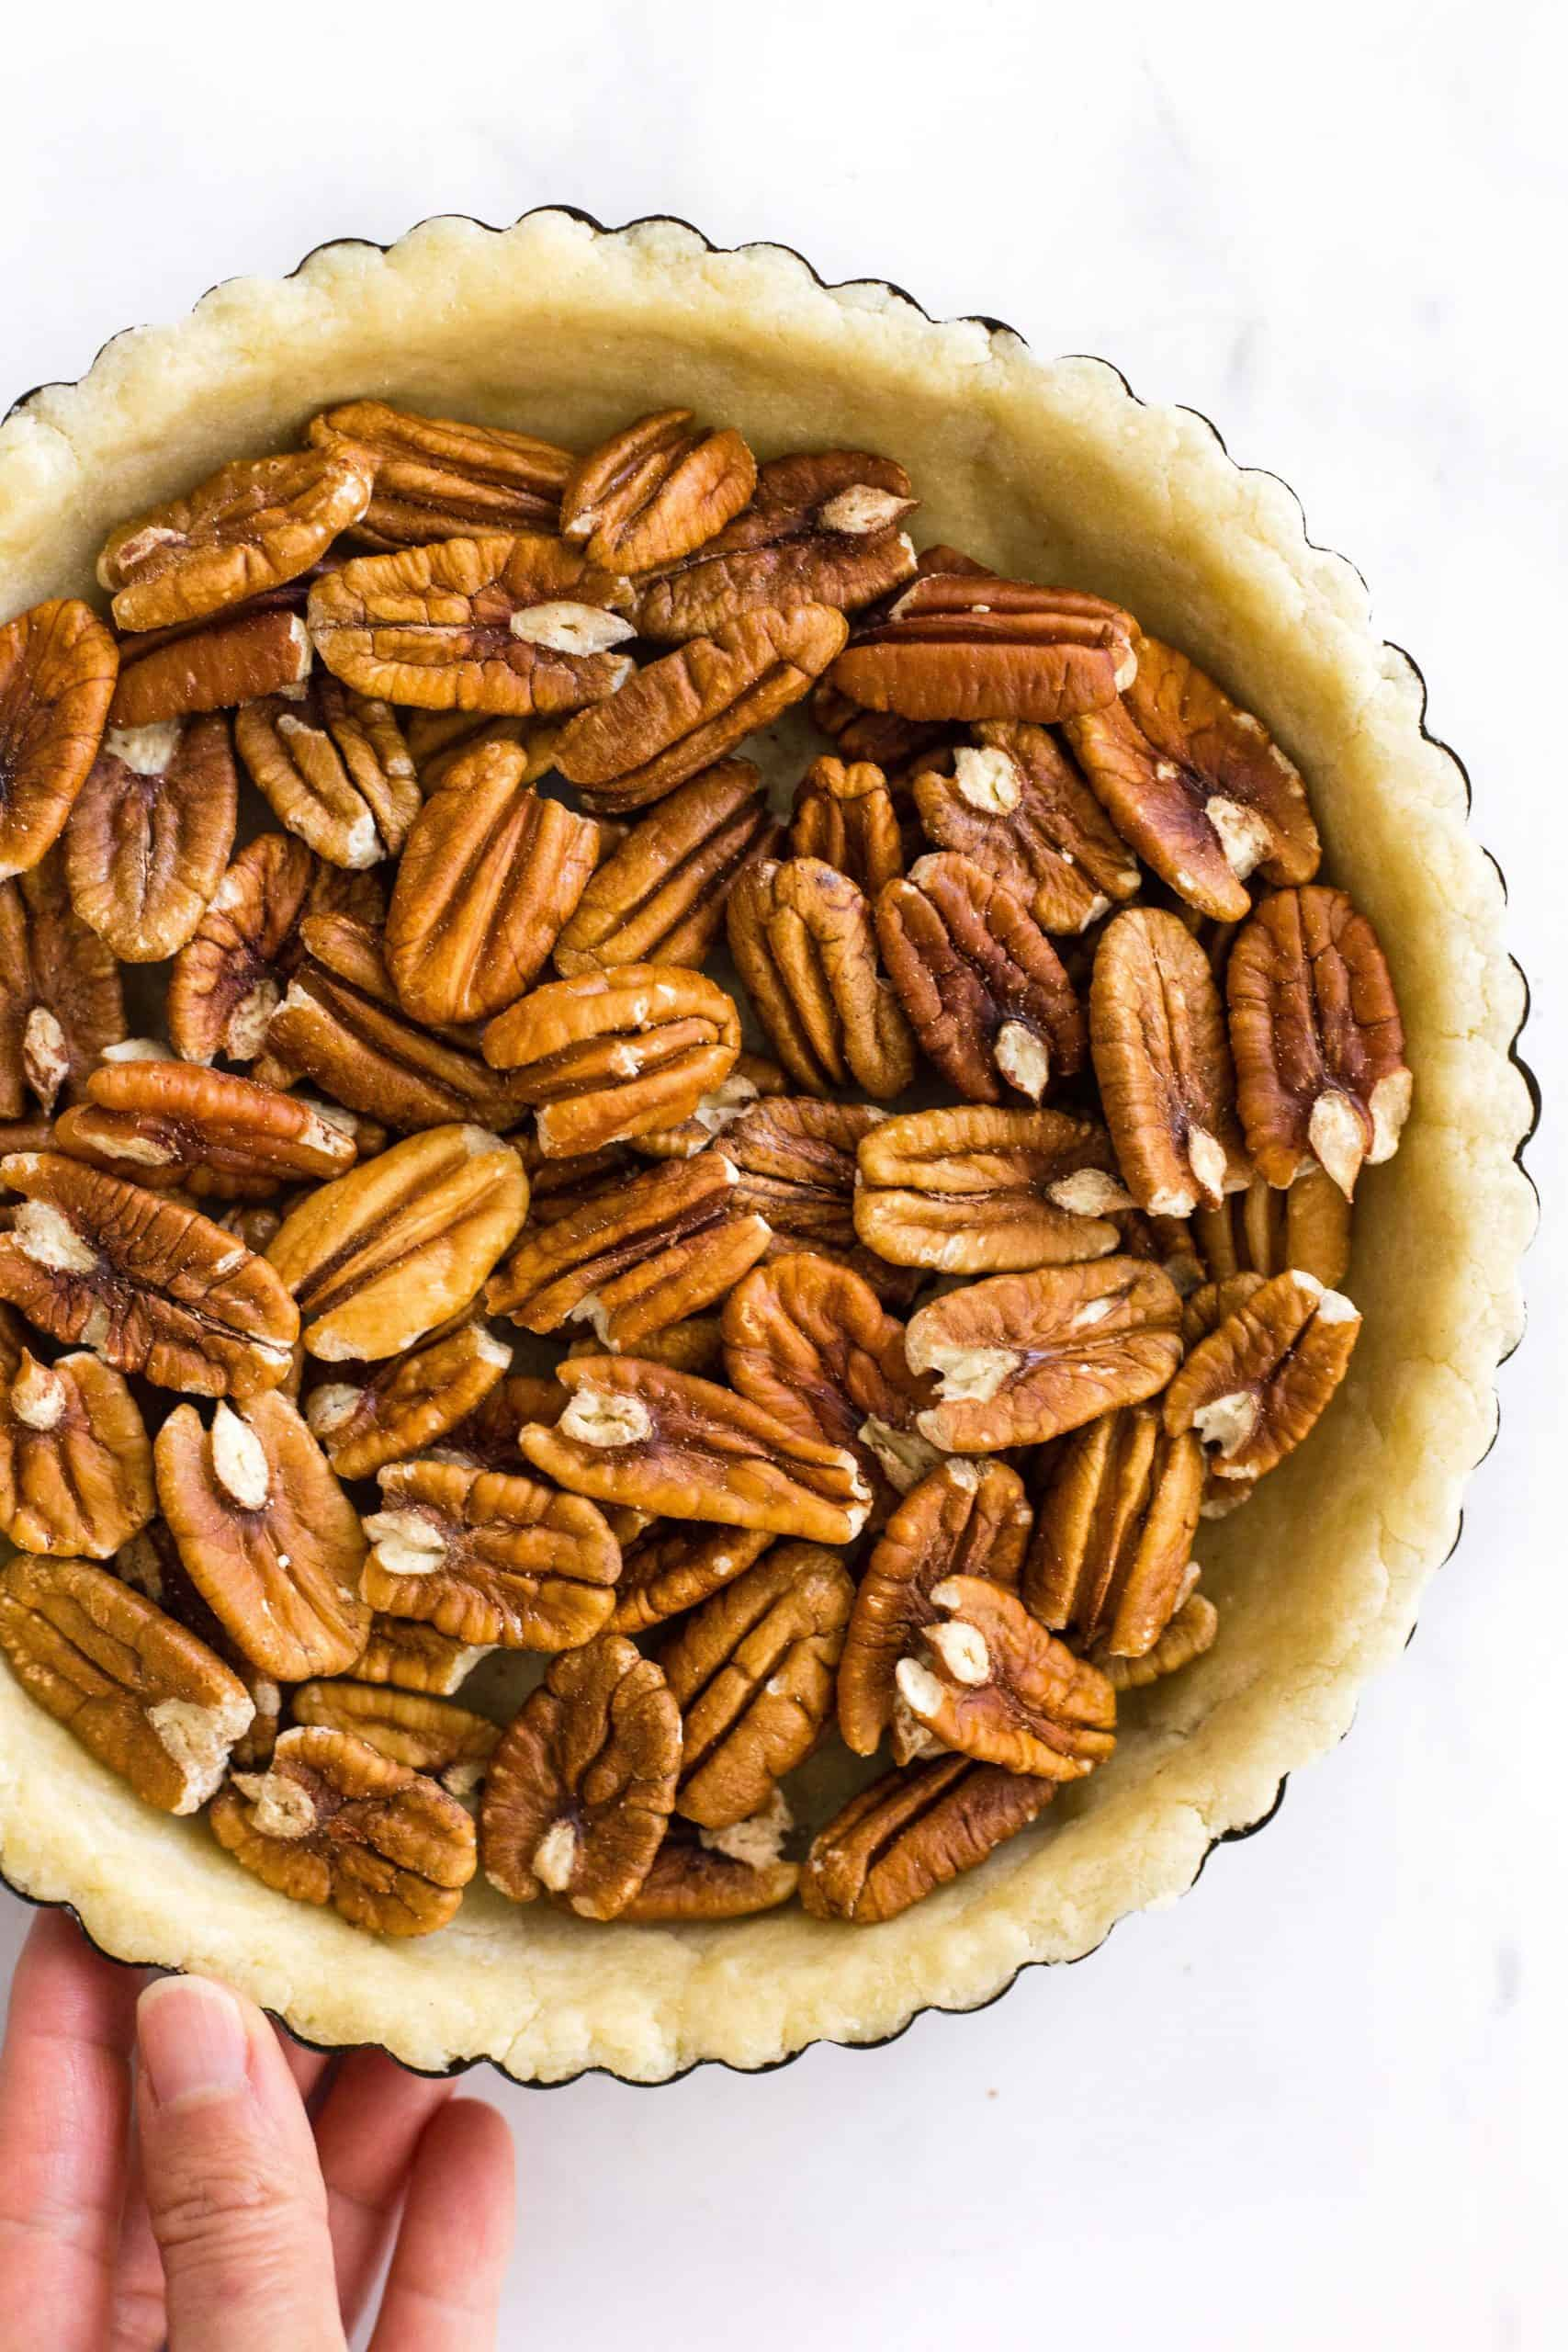 Hand holding a pie tin with unbaked pie crust filled with pecans.